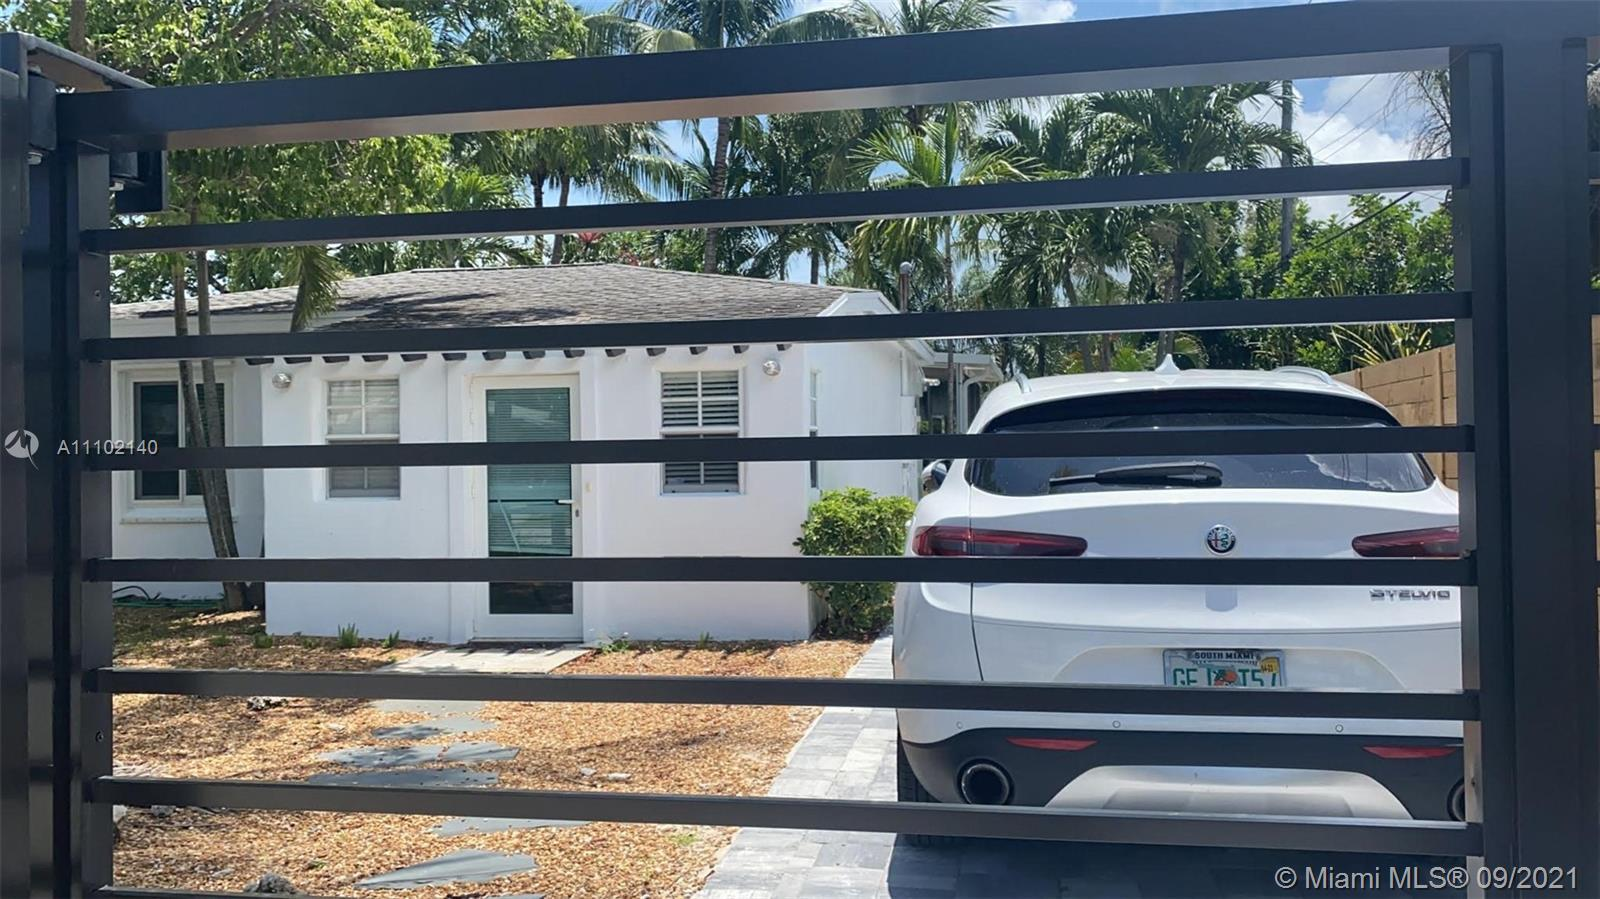 AMAZING 2/2 BEACH COTTAGE SINGLE FAMILY HOME, ON A HUGE 6620 SQ. FT. LOT WITH TONS OF ROOM FOR YOUR